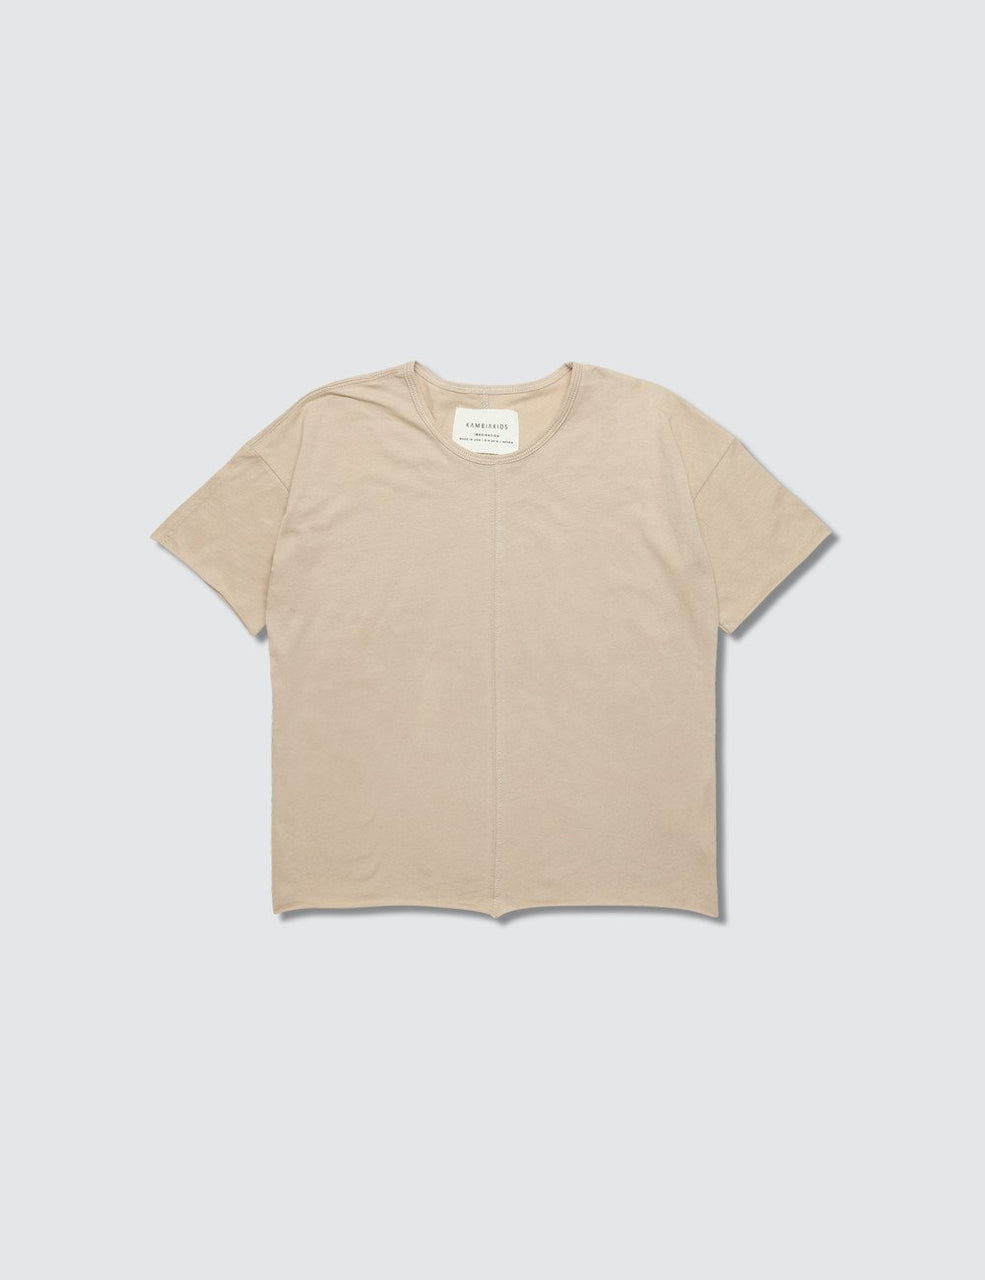 Kid's Clothing - Short Sleeve Top - Bone